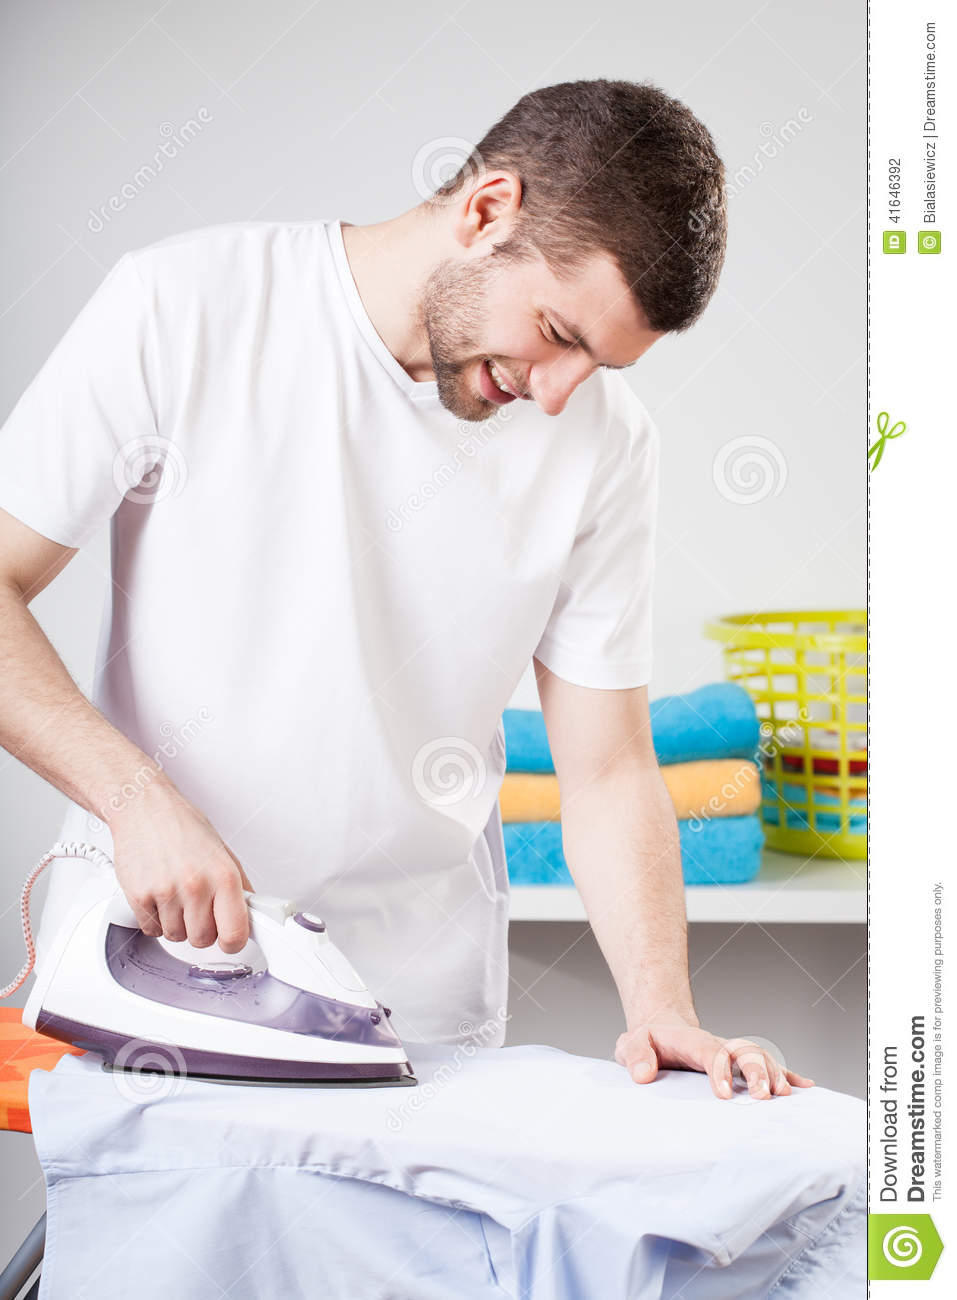 Man Doing Household Chores Stock Photo - Image: 41646392